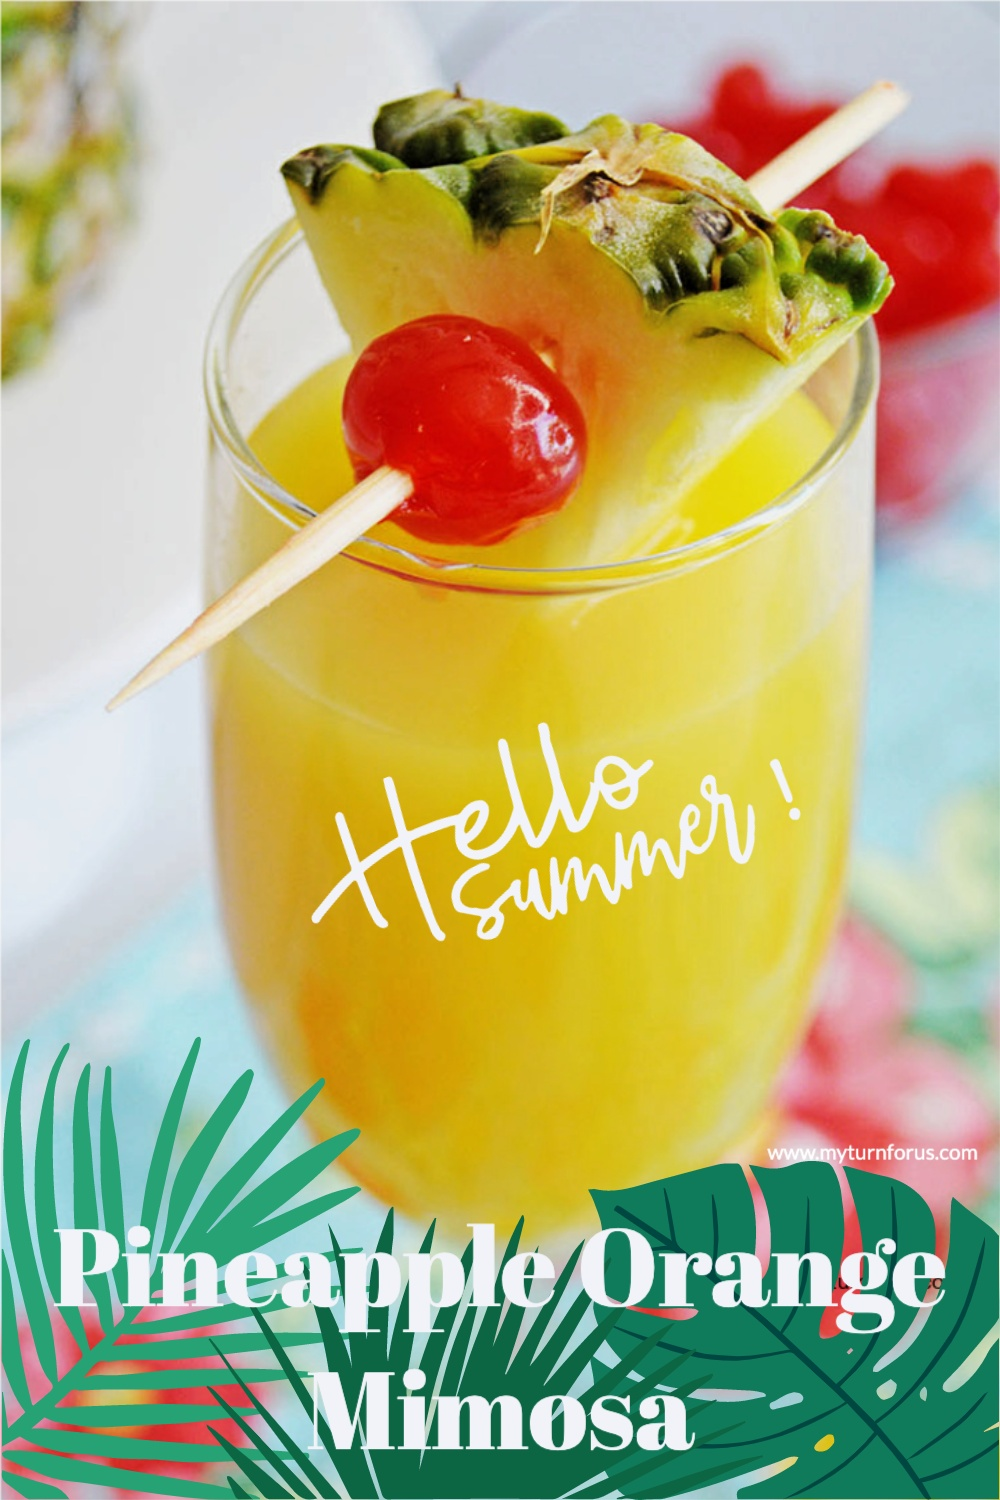 Our best mimosa recipe contains rum, pineapple, and orange juice for a Pineapple Mimosa or Pineapple Orange Mimosa or Pineapple Drinks.